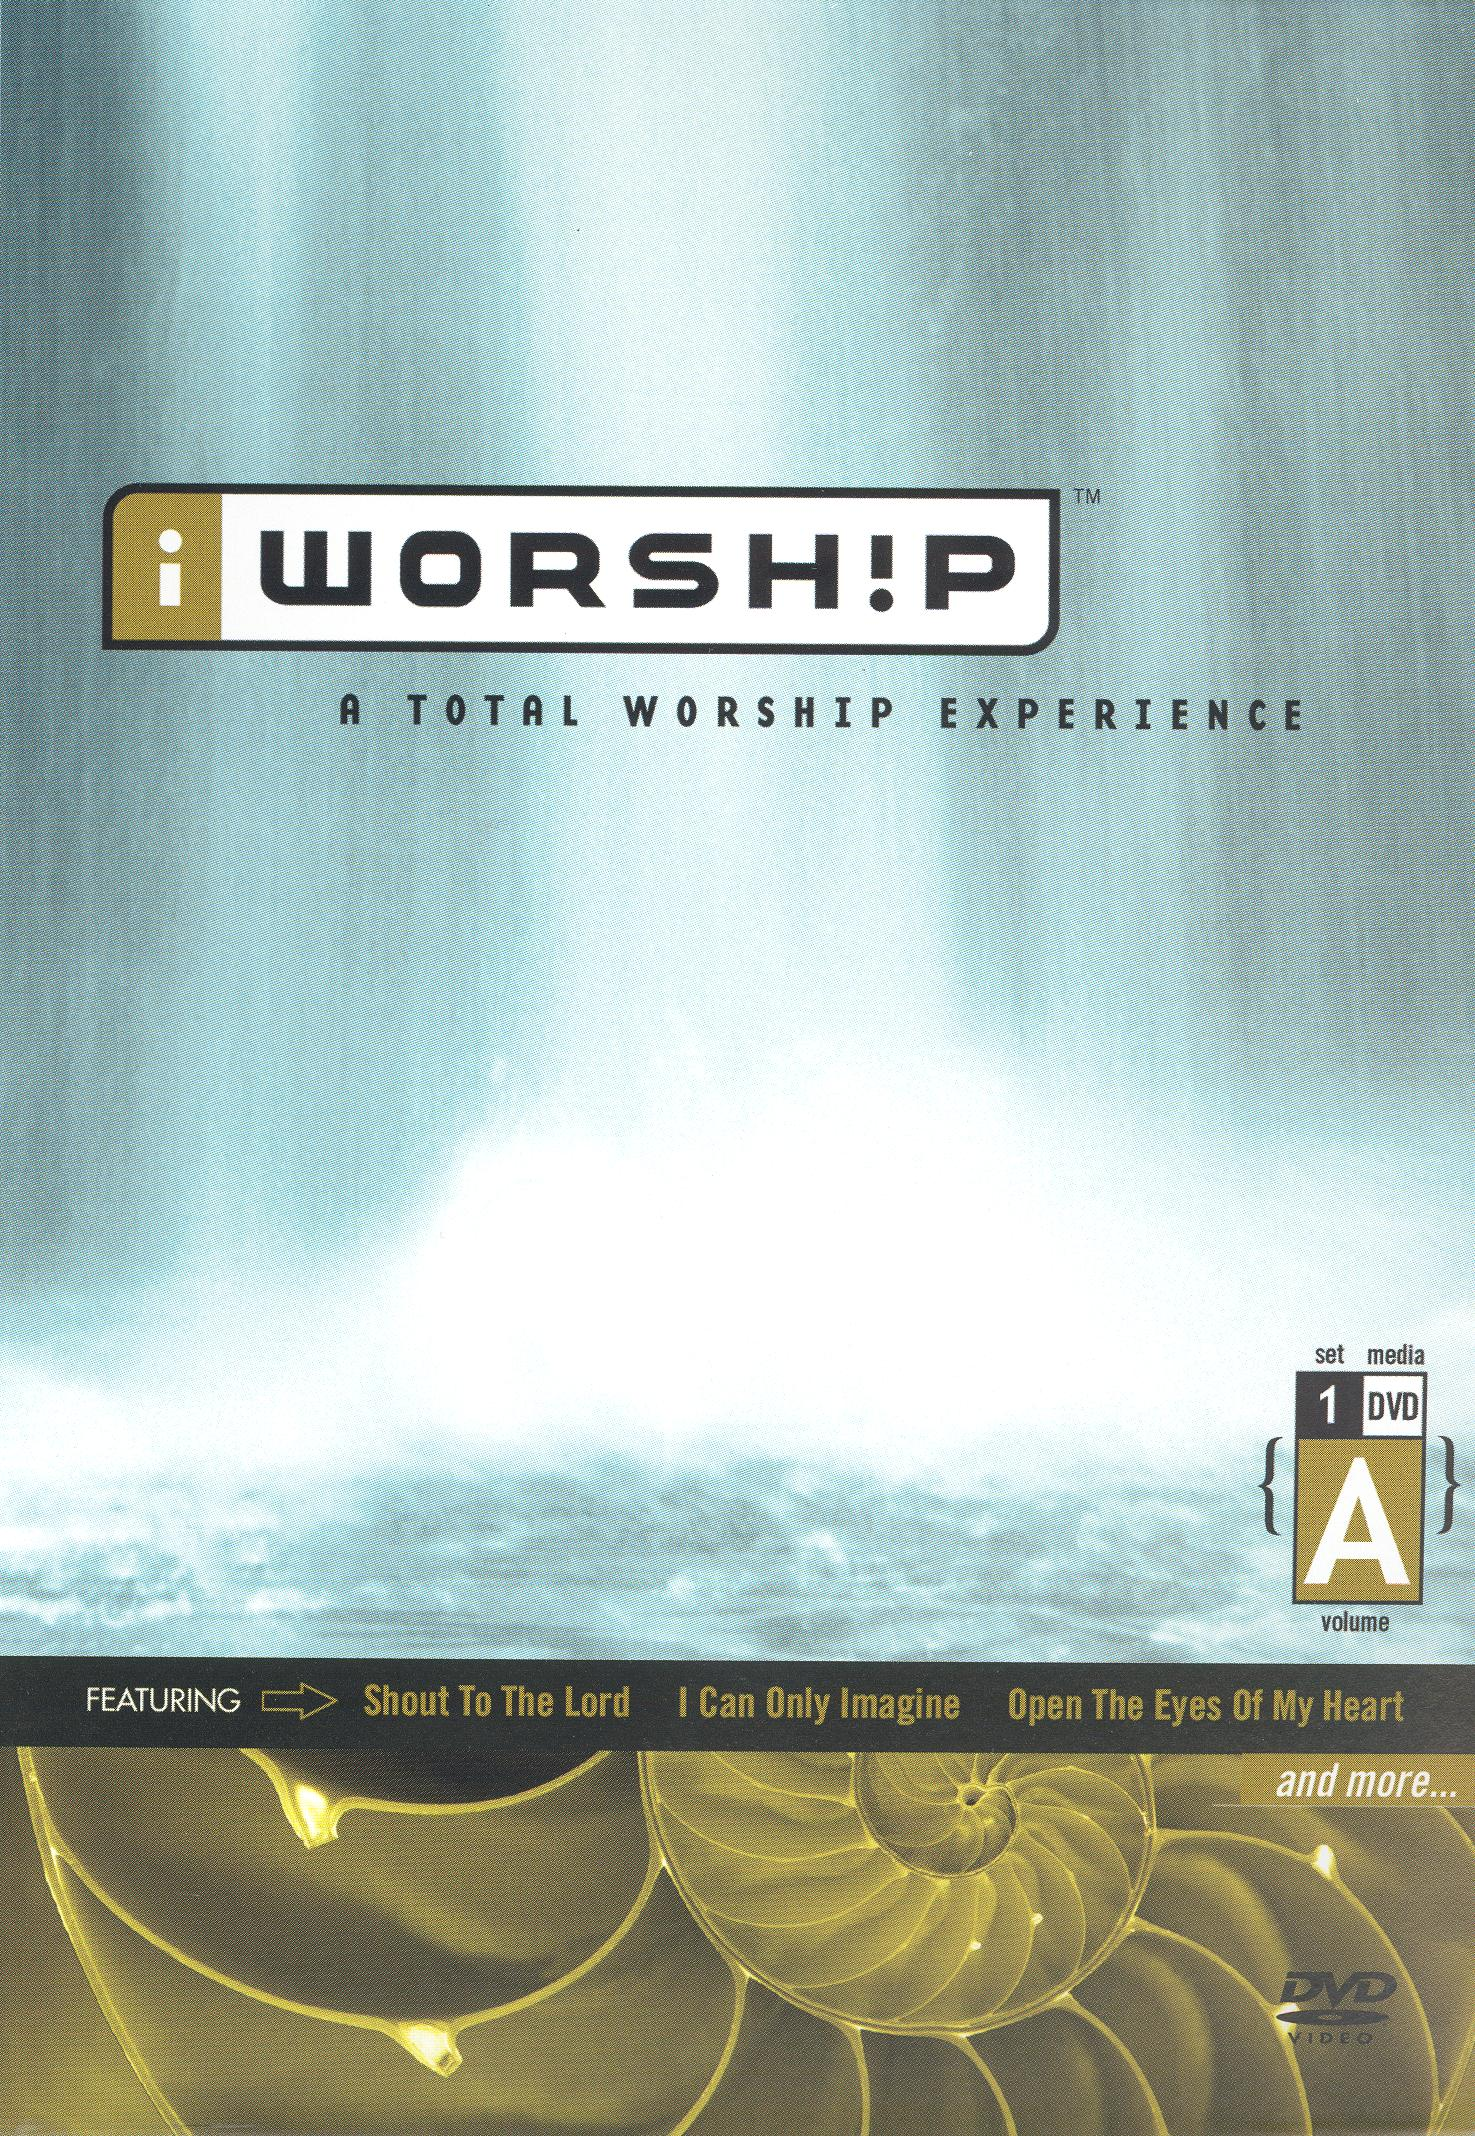 iWorship, Volume A